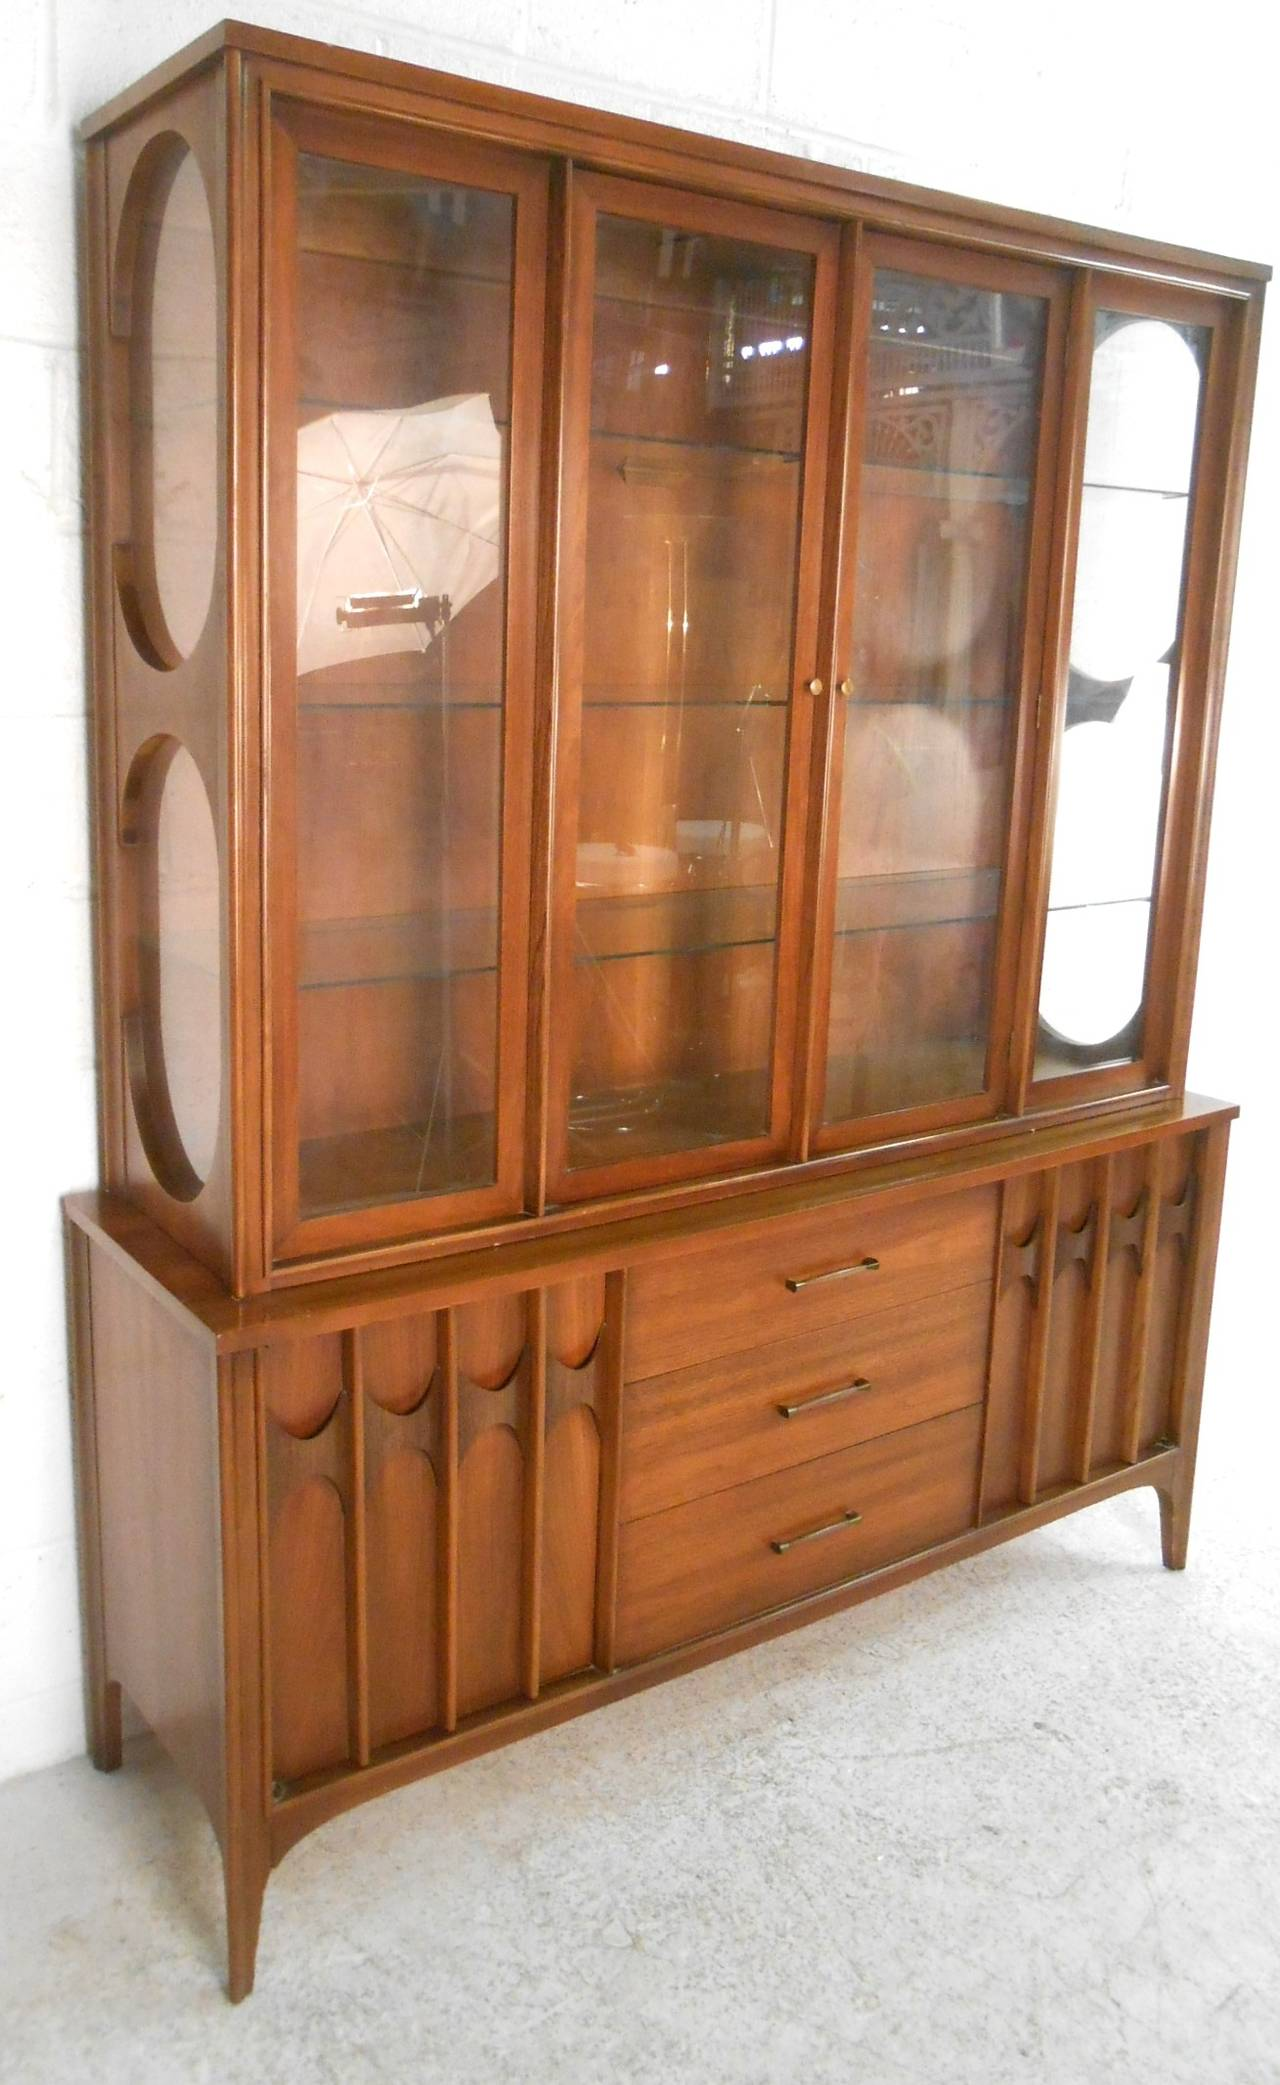 dating china cabinets Furniture - china cabinets 61 item(s) found: these items are not for sale and the descriptions, images and prices are for reference purposes only.